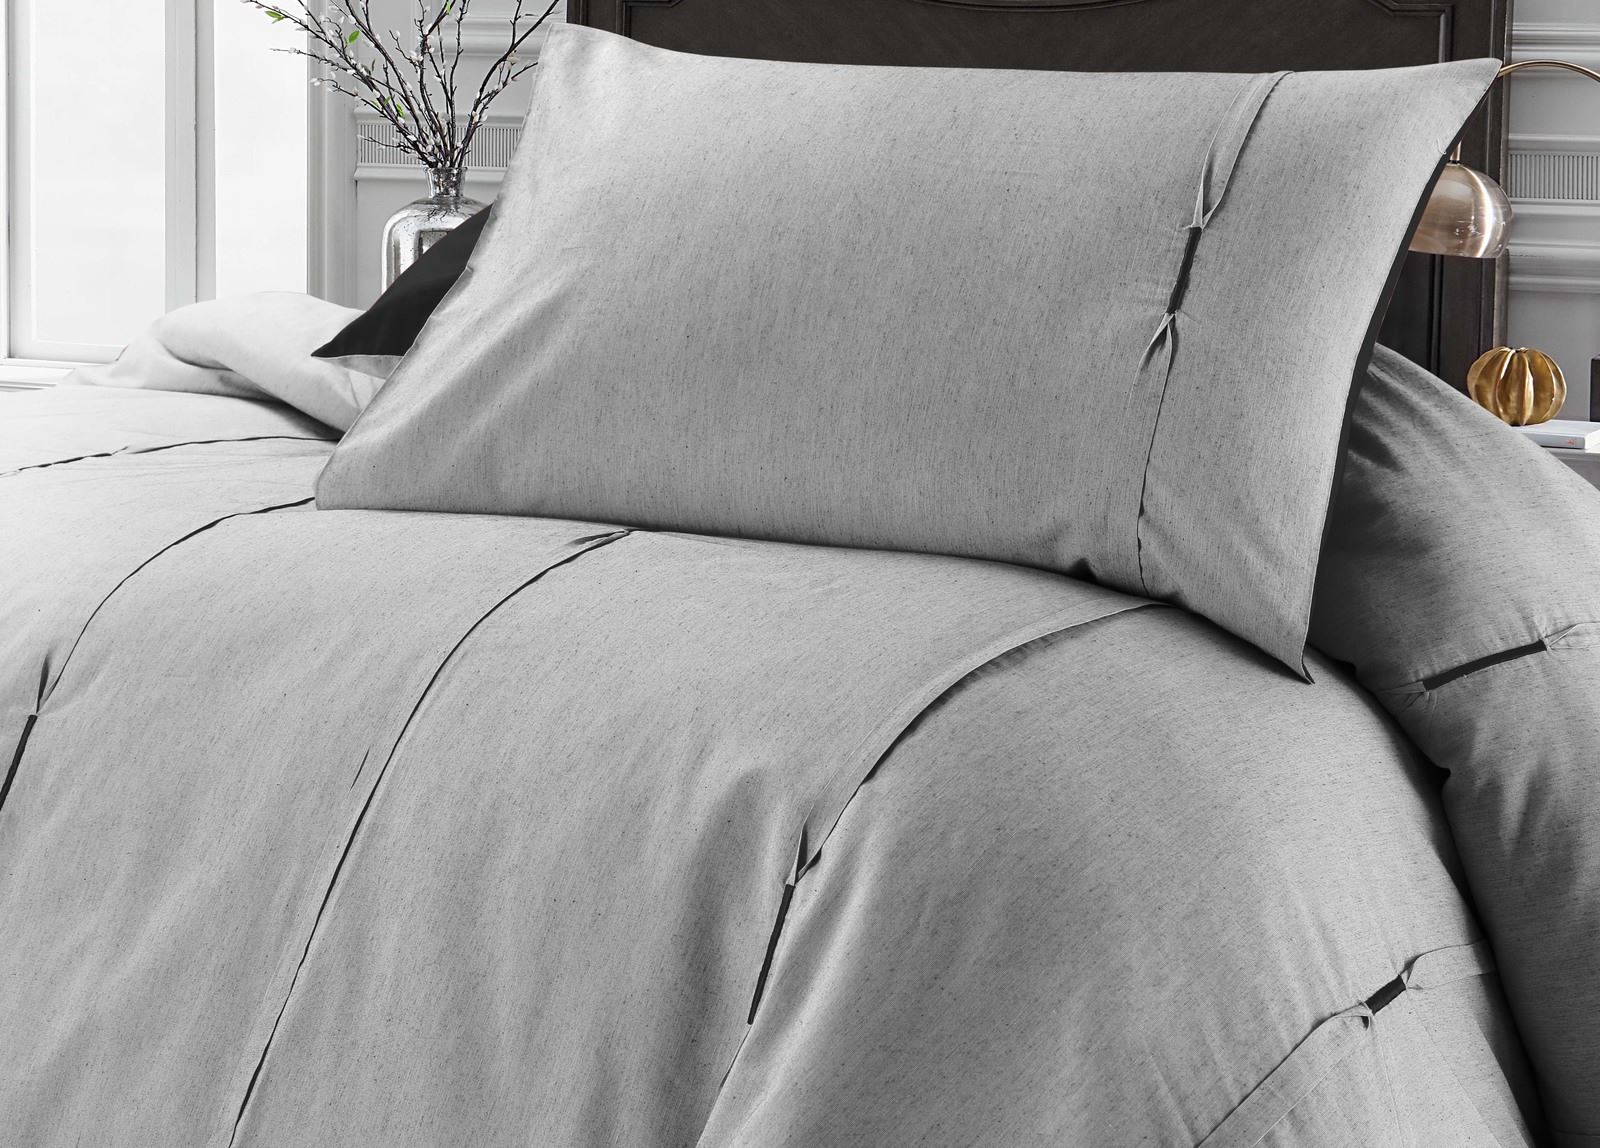 Luxury-Embellished-Duvet-Cover-Set-Single-Double-Super-King-Size-Bedding-Grey thumbnail 4